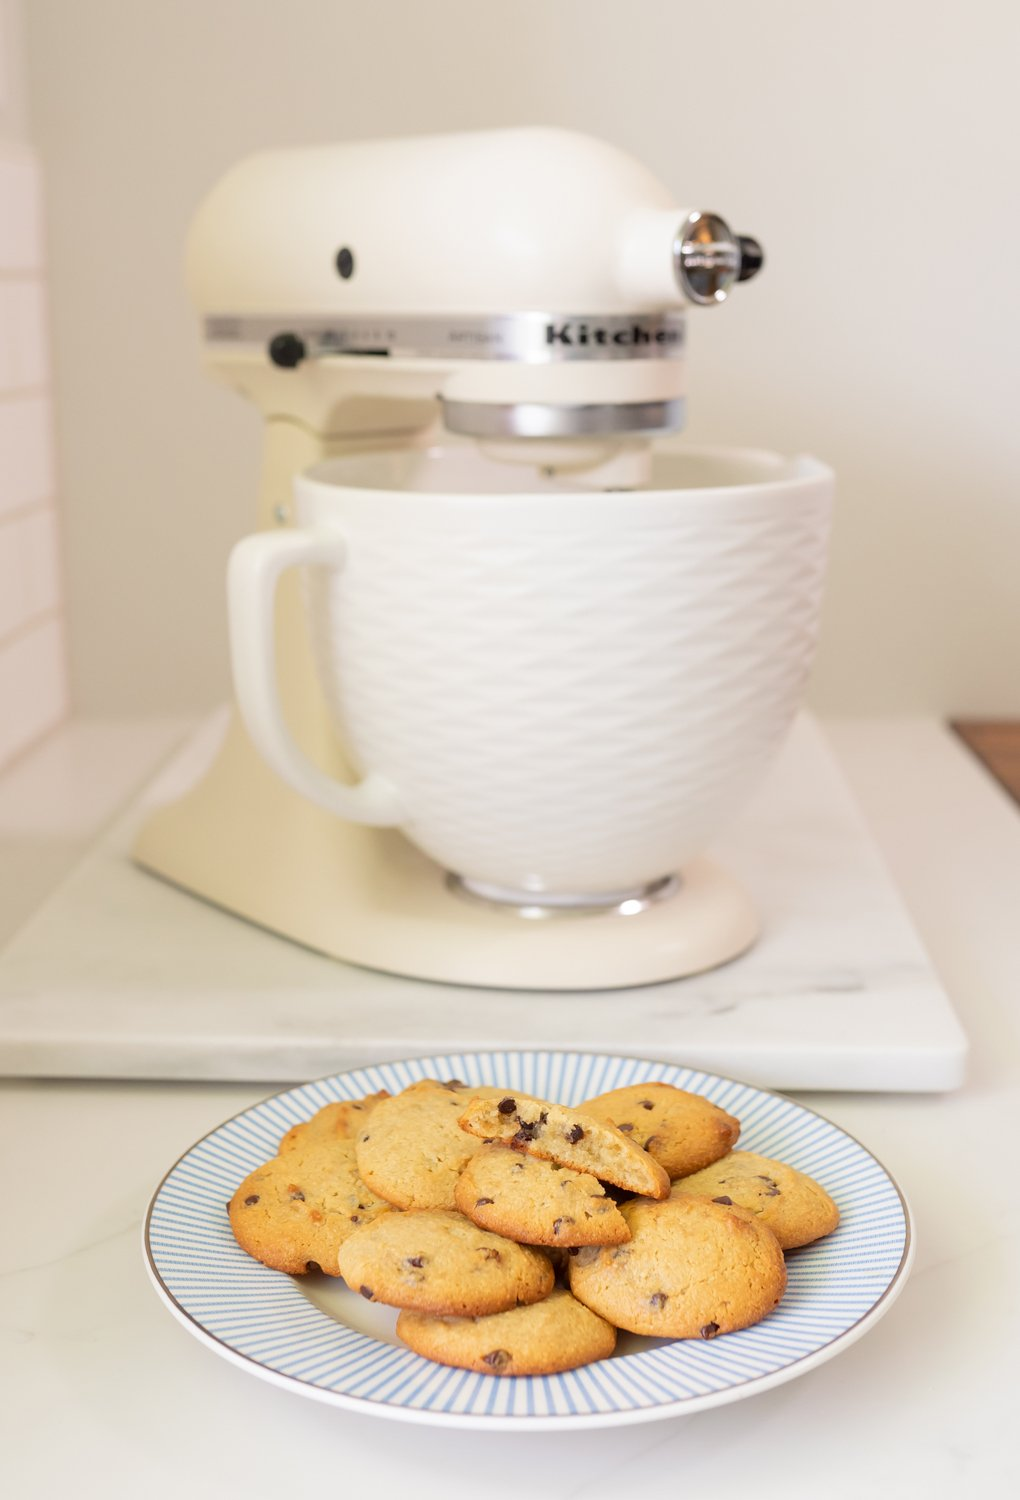 Paleo chocolate chip cookies with KitchenAid mixer